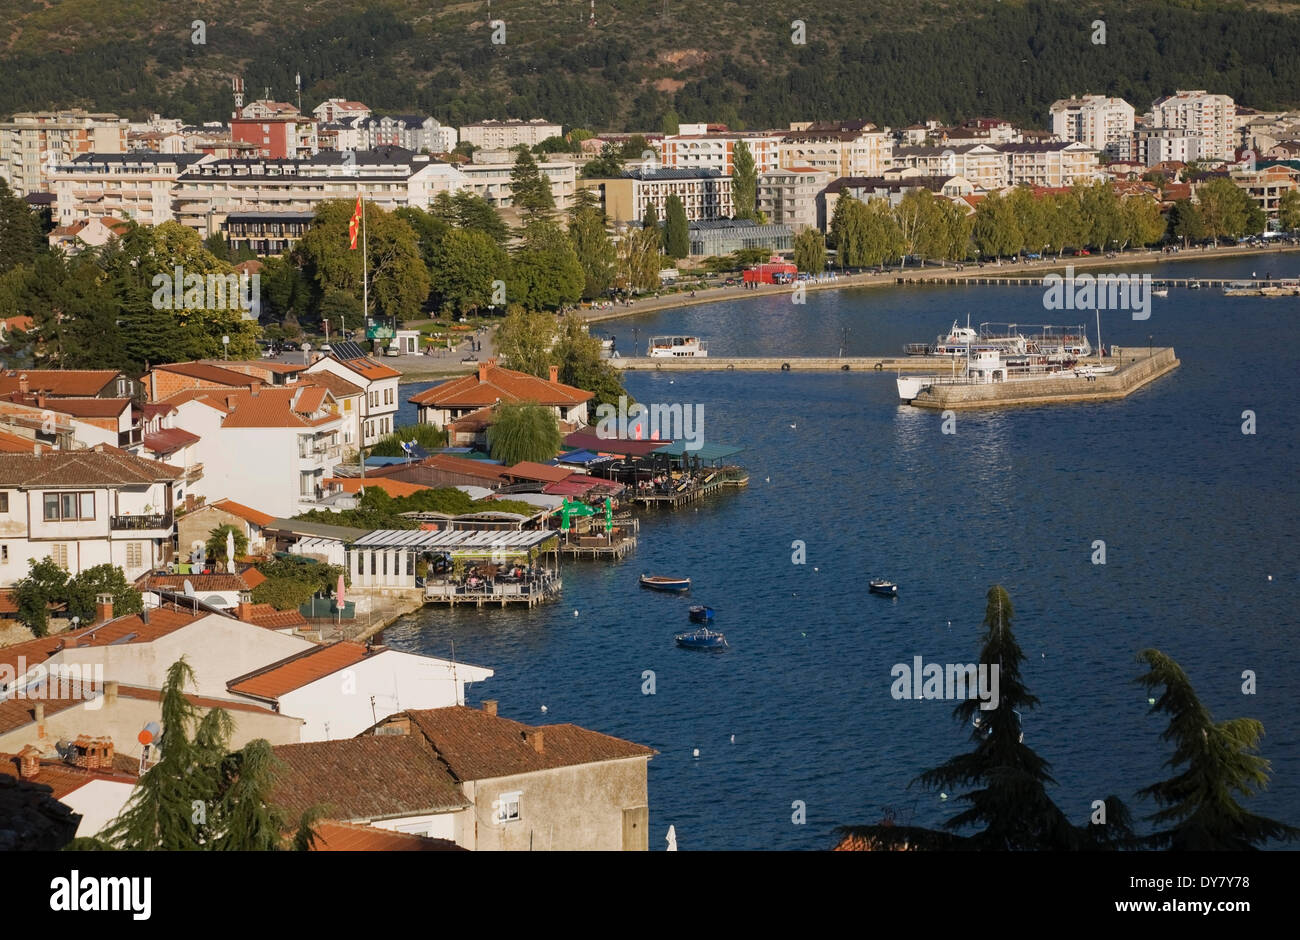 Residential buildings and Lake Ohrid, Ohrid, Macedonia - Stock Image